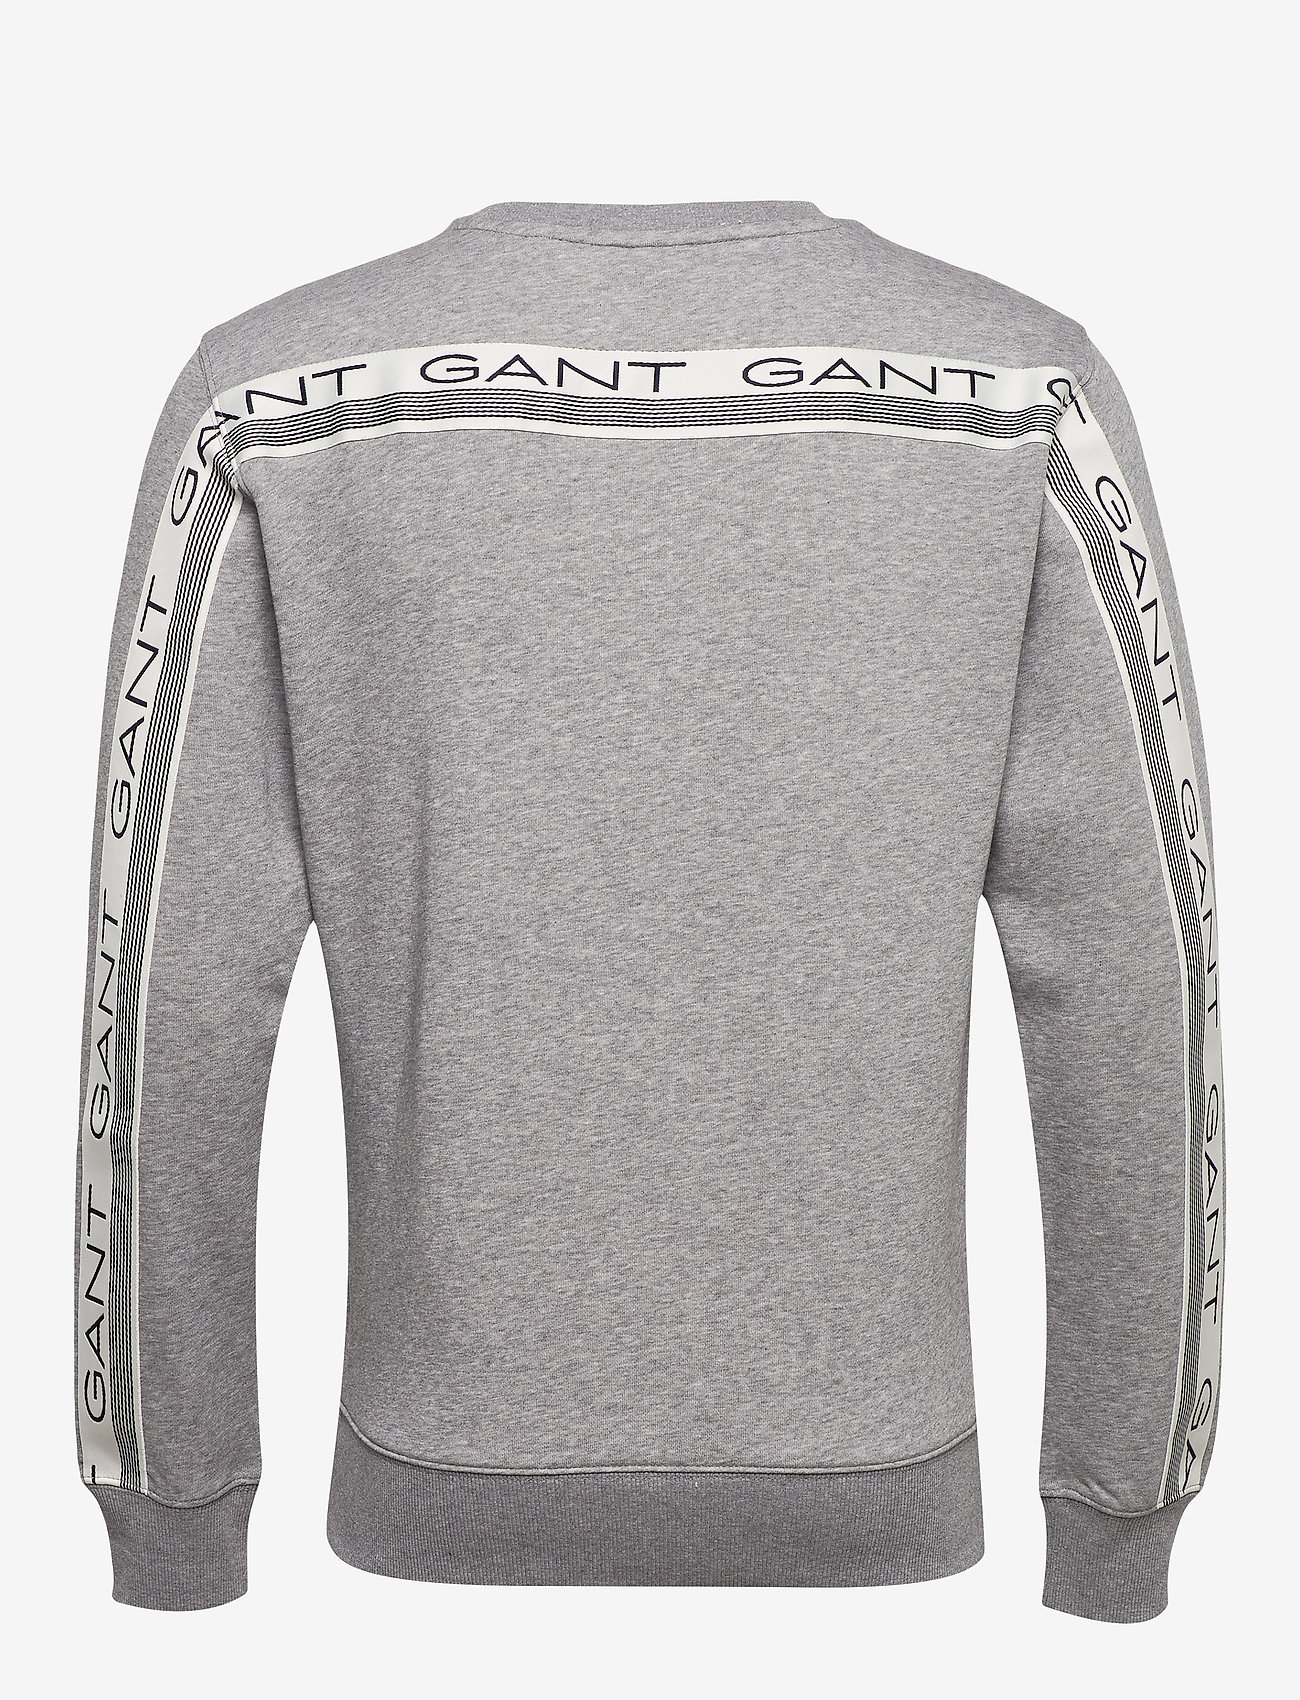 GANT D1. 13 STRIPES C-NECK SWEAT - Sweatshirts GREY MELANGE - Menn Klær